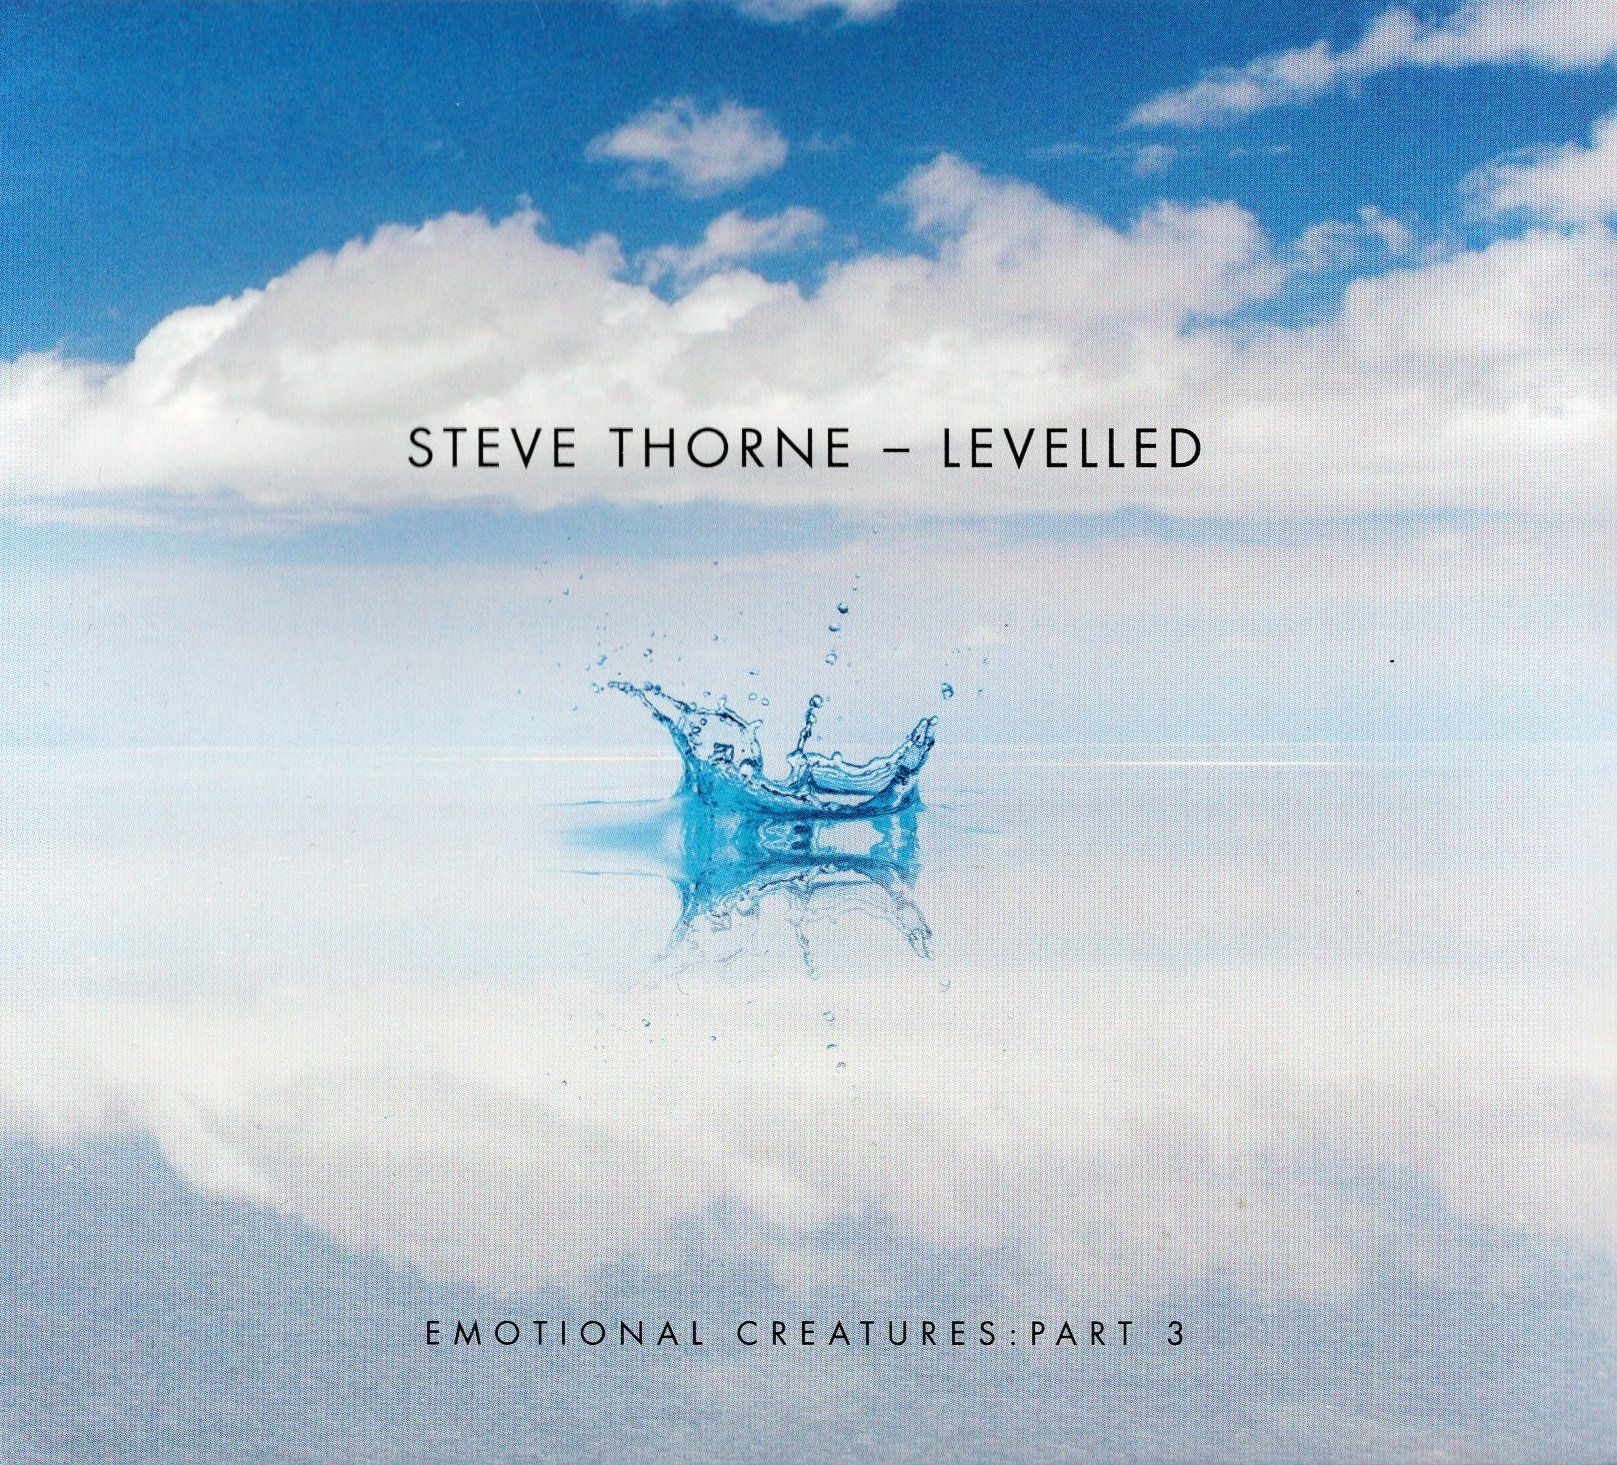 Levelled (Emotional Creatures: Part 3) - STEVE THORNE